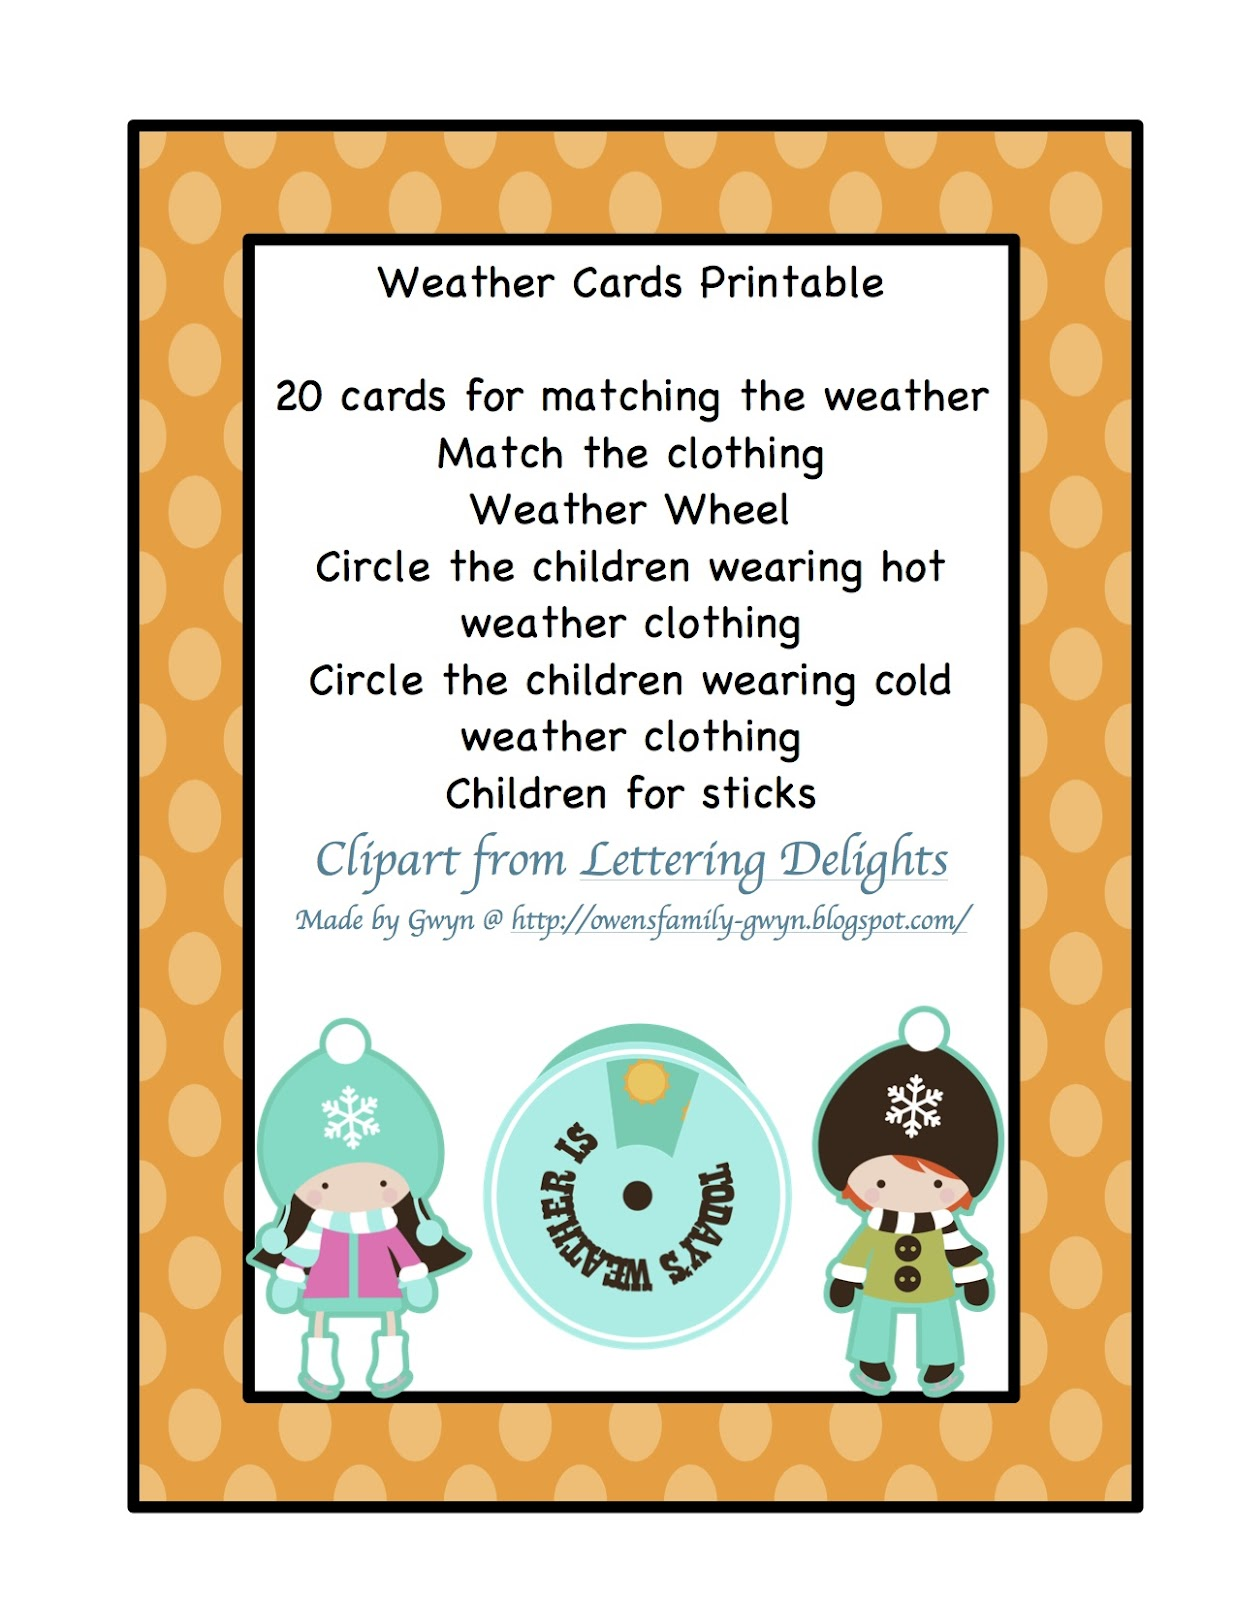 Weather Cards Printable